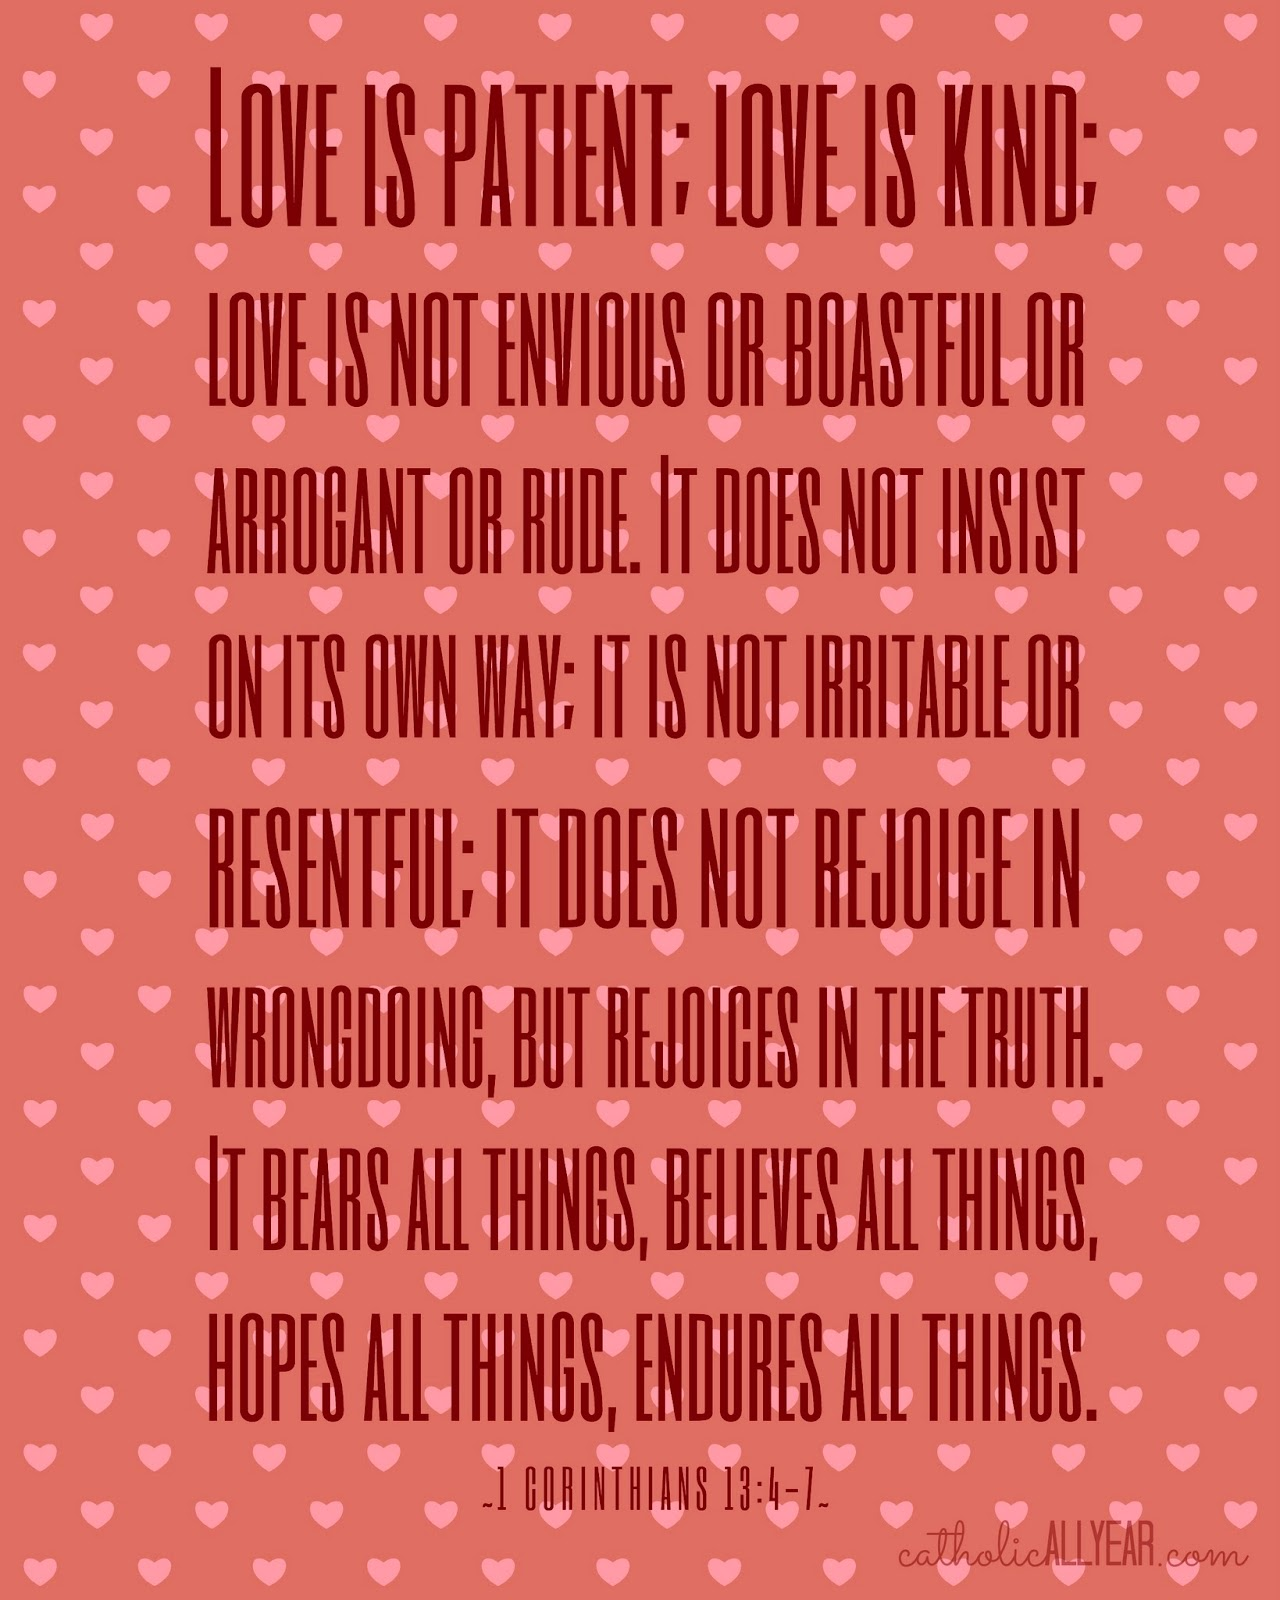 Love Is Patient Quote Catholic All Year Seven Free Printable Catholic Valentines